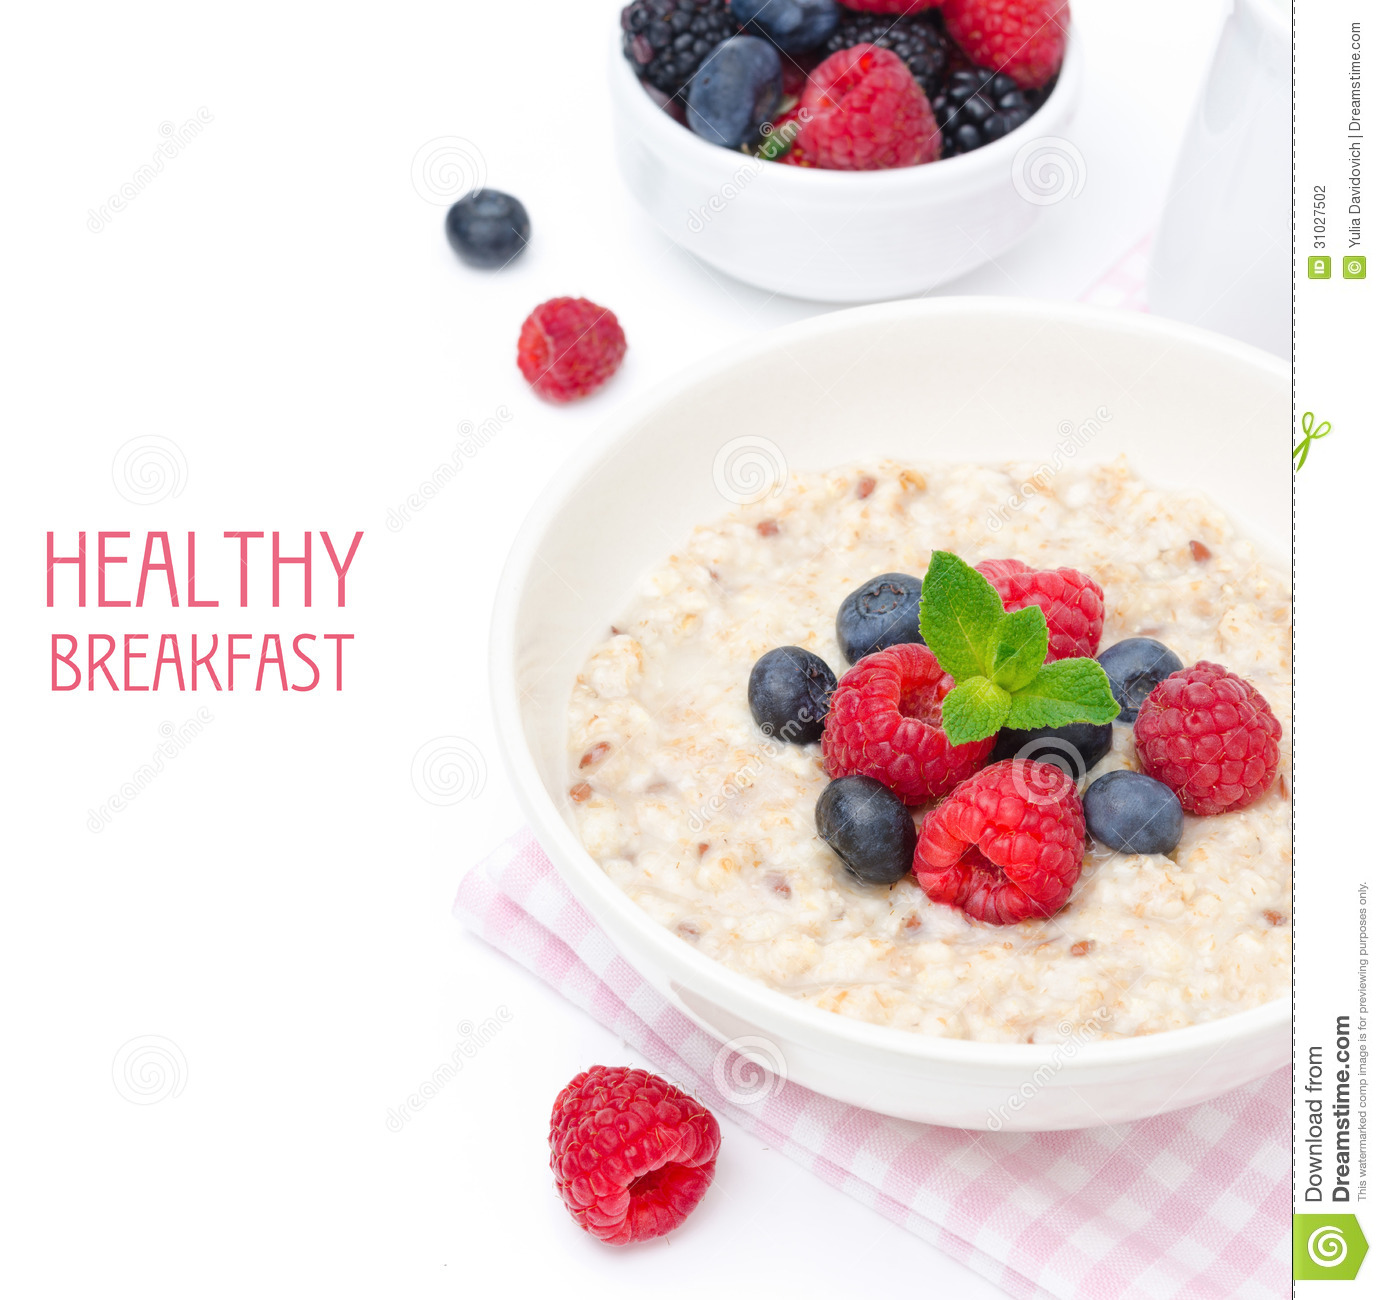 is yogurt and fruit a healthy breakfast how are fruits healthy